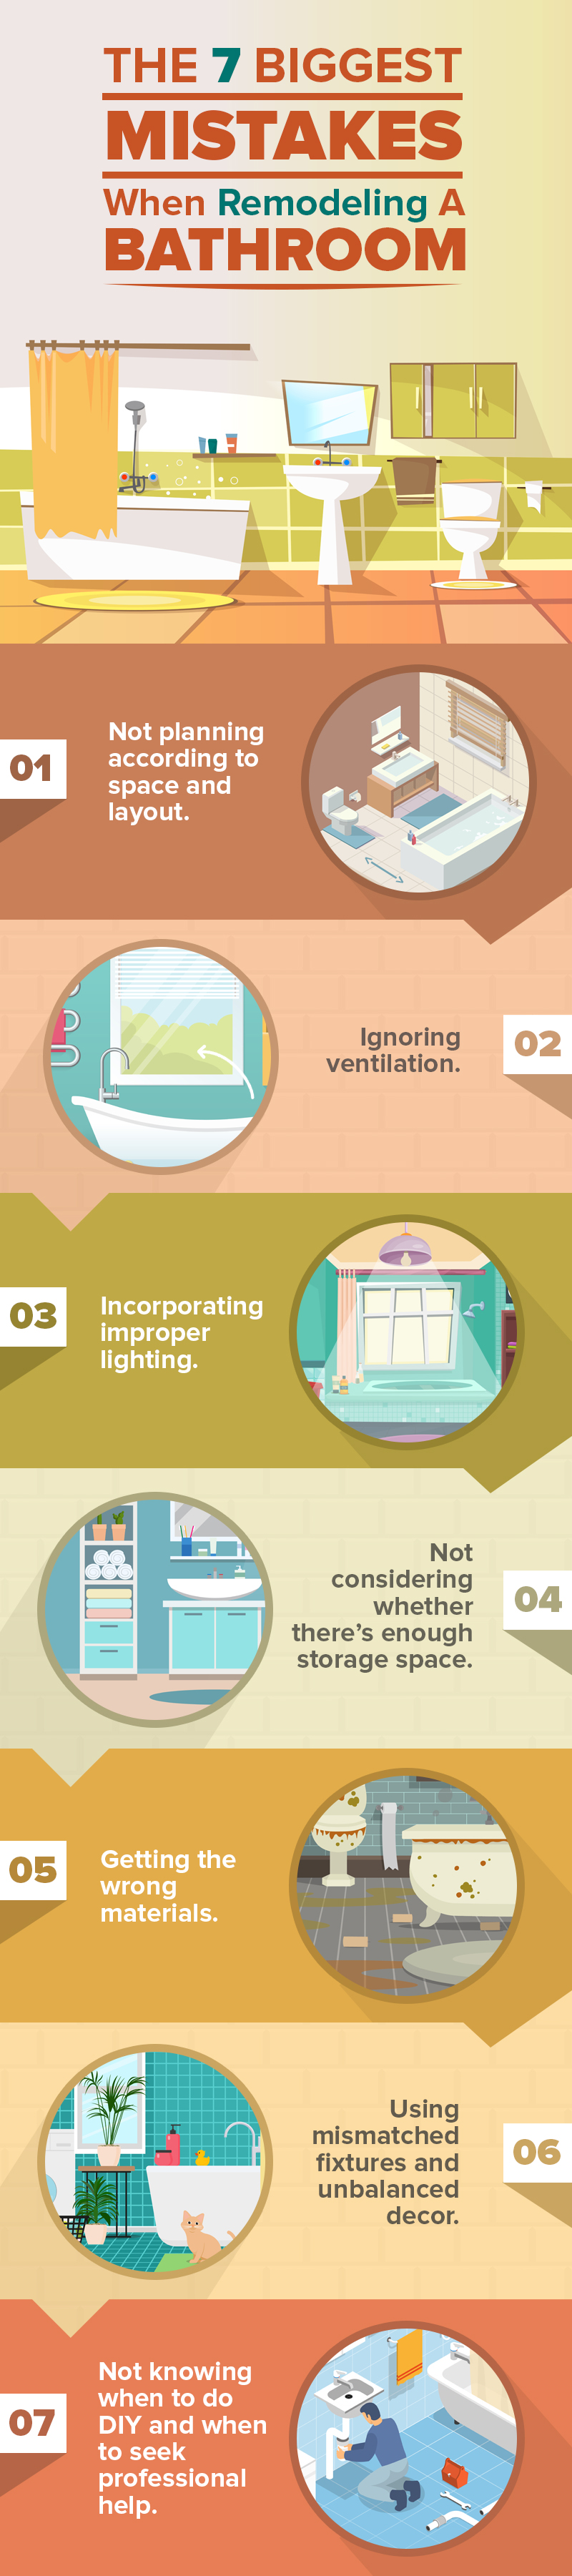 The 7 Biggest Mistakes When Remodeling A Bathroom.jpg